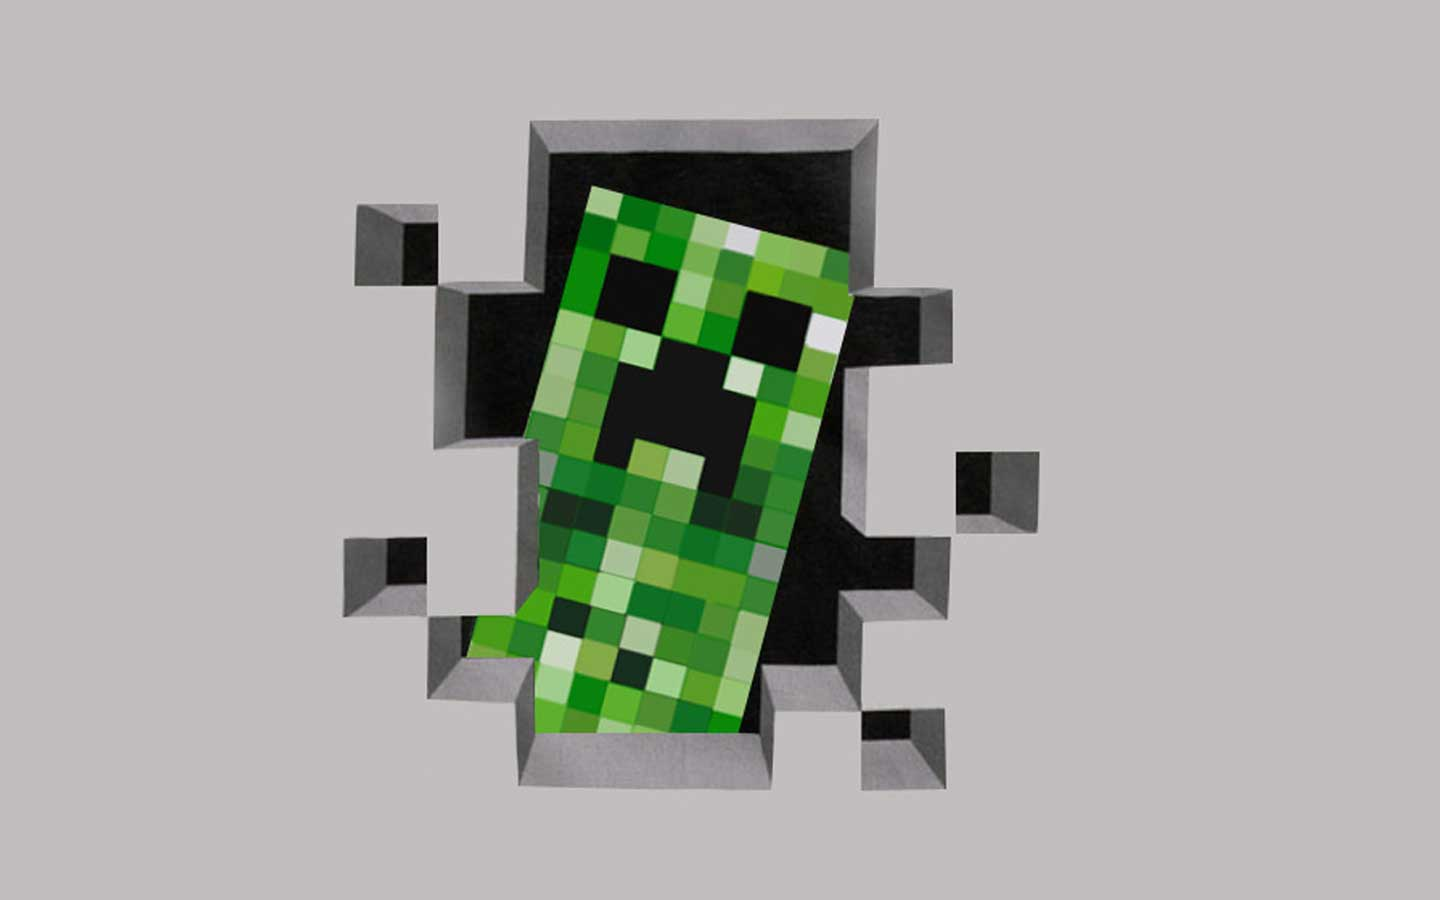 minecraft creeper coming out wallpaper 1440x900